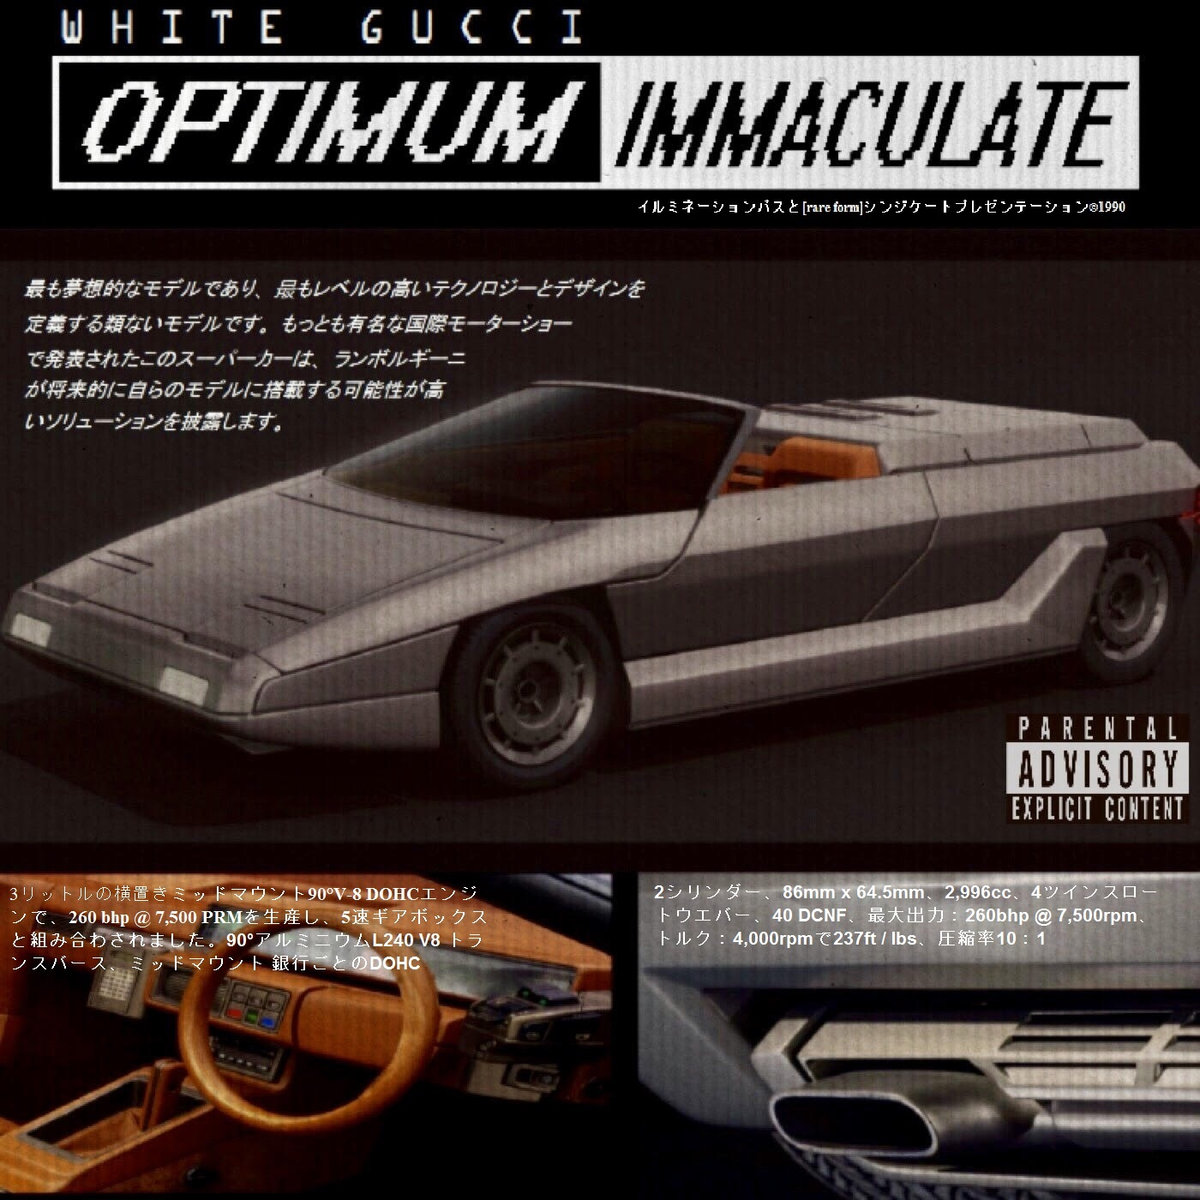 "White Gucci - ""Optimum Immaculate"" (Album)"